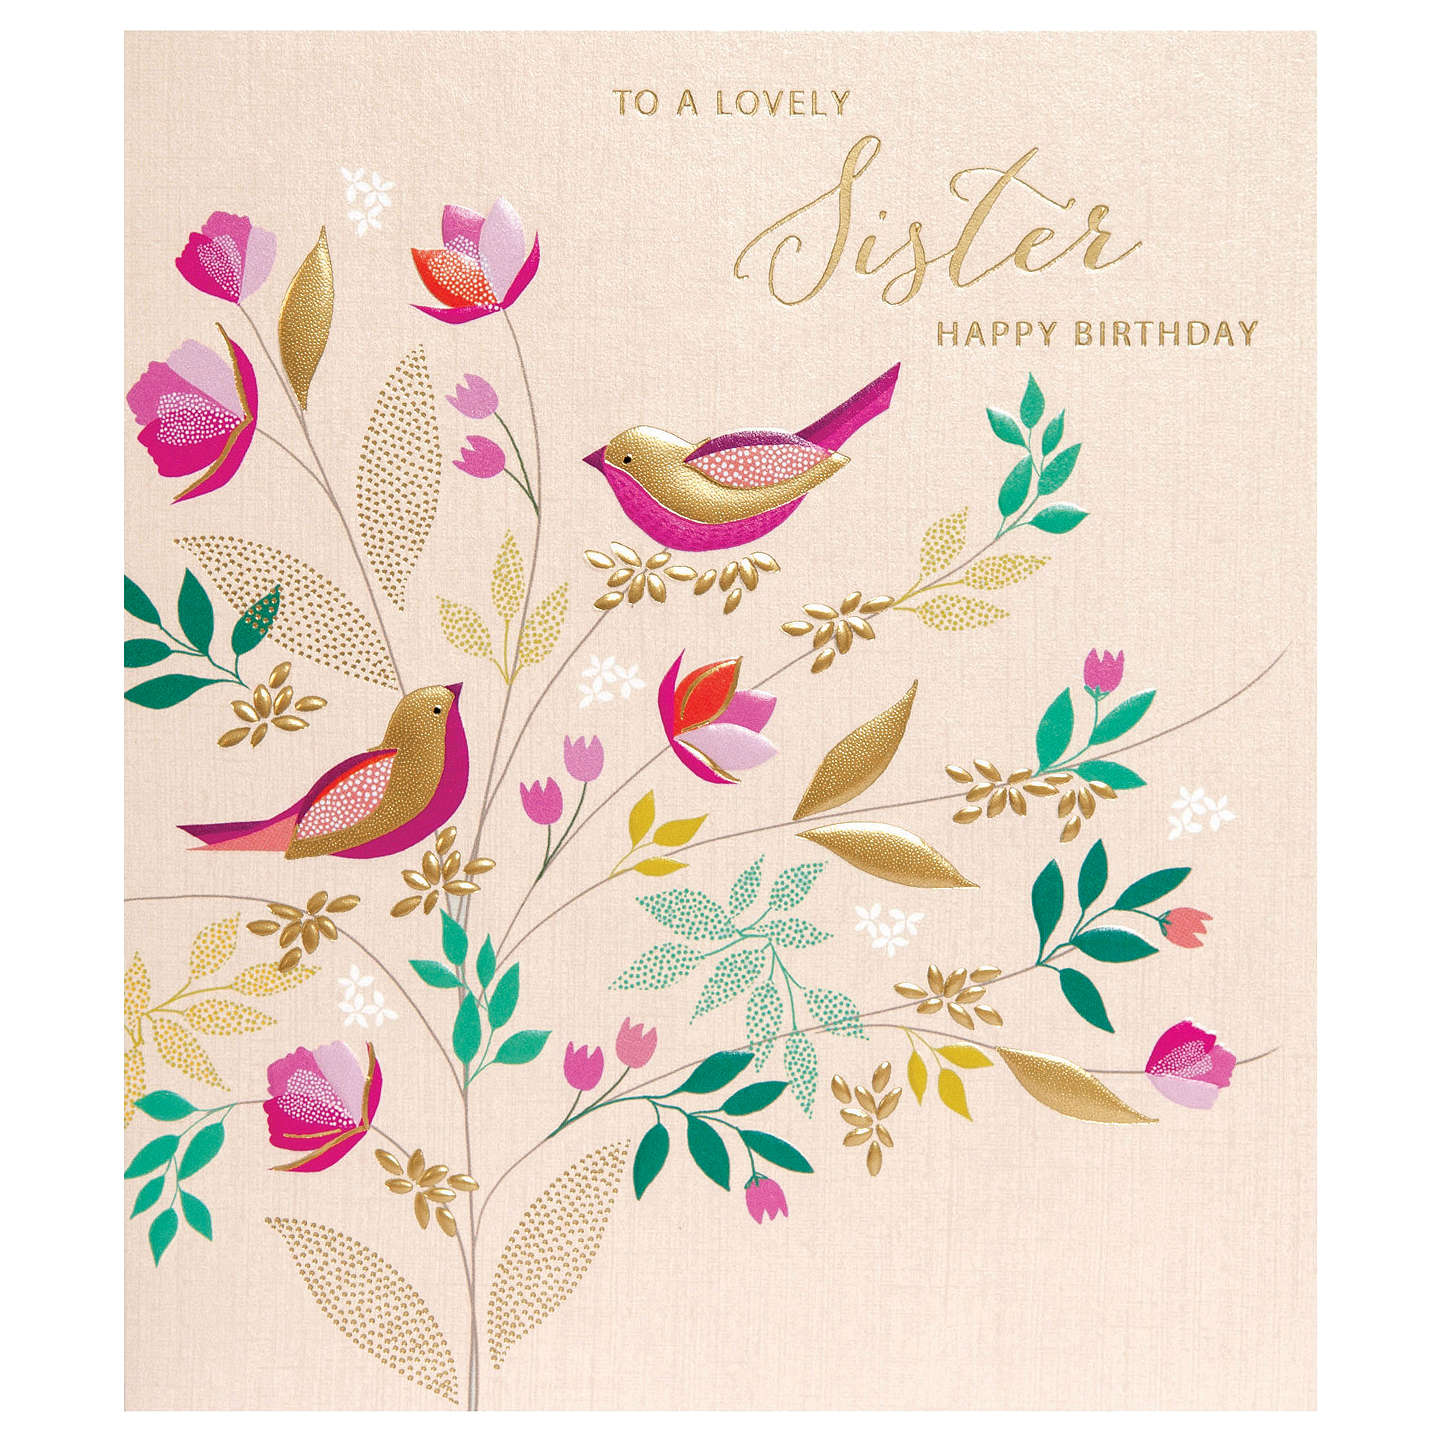 Art File Lovely Sister Happy Birthday Greeting Card At John Lewis